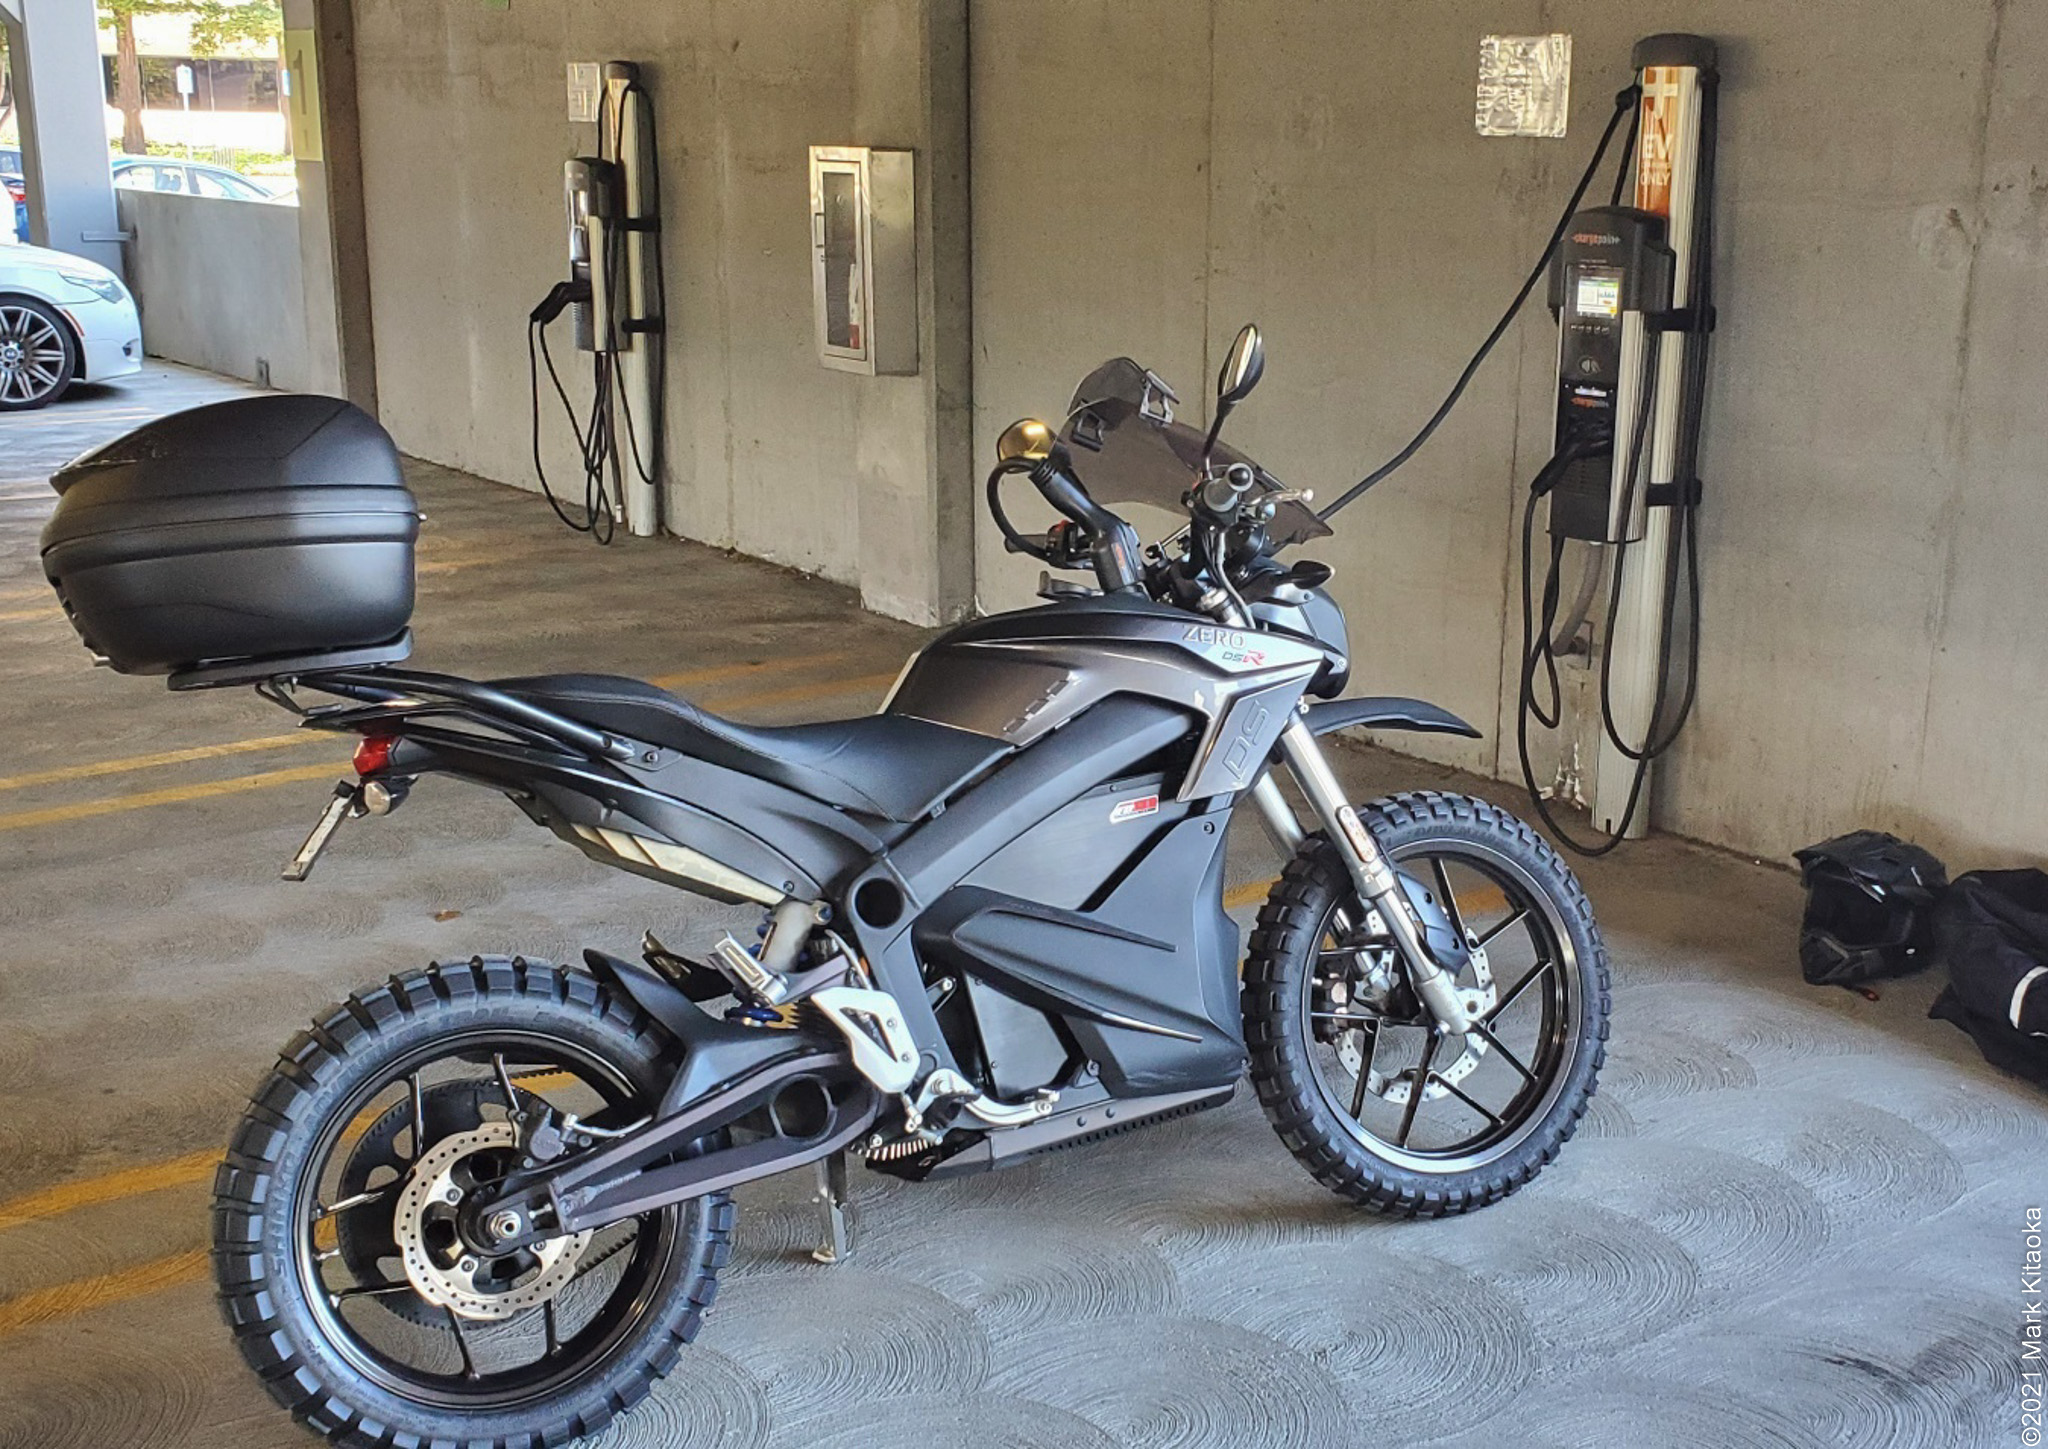 Zero DSR parked at charging station